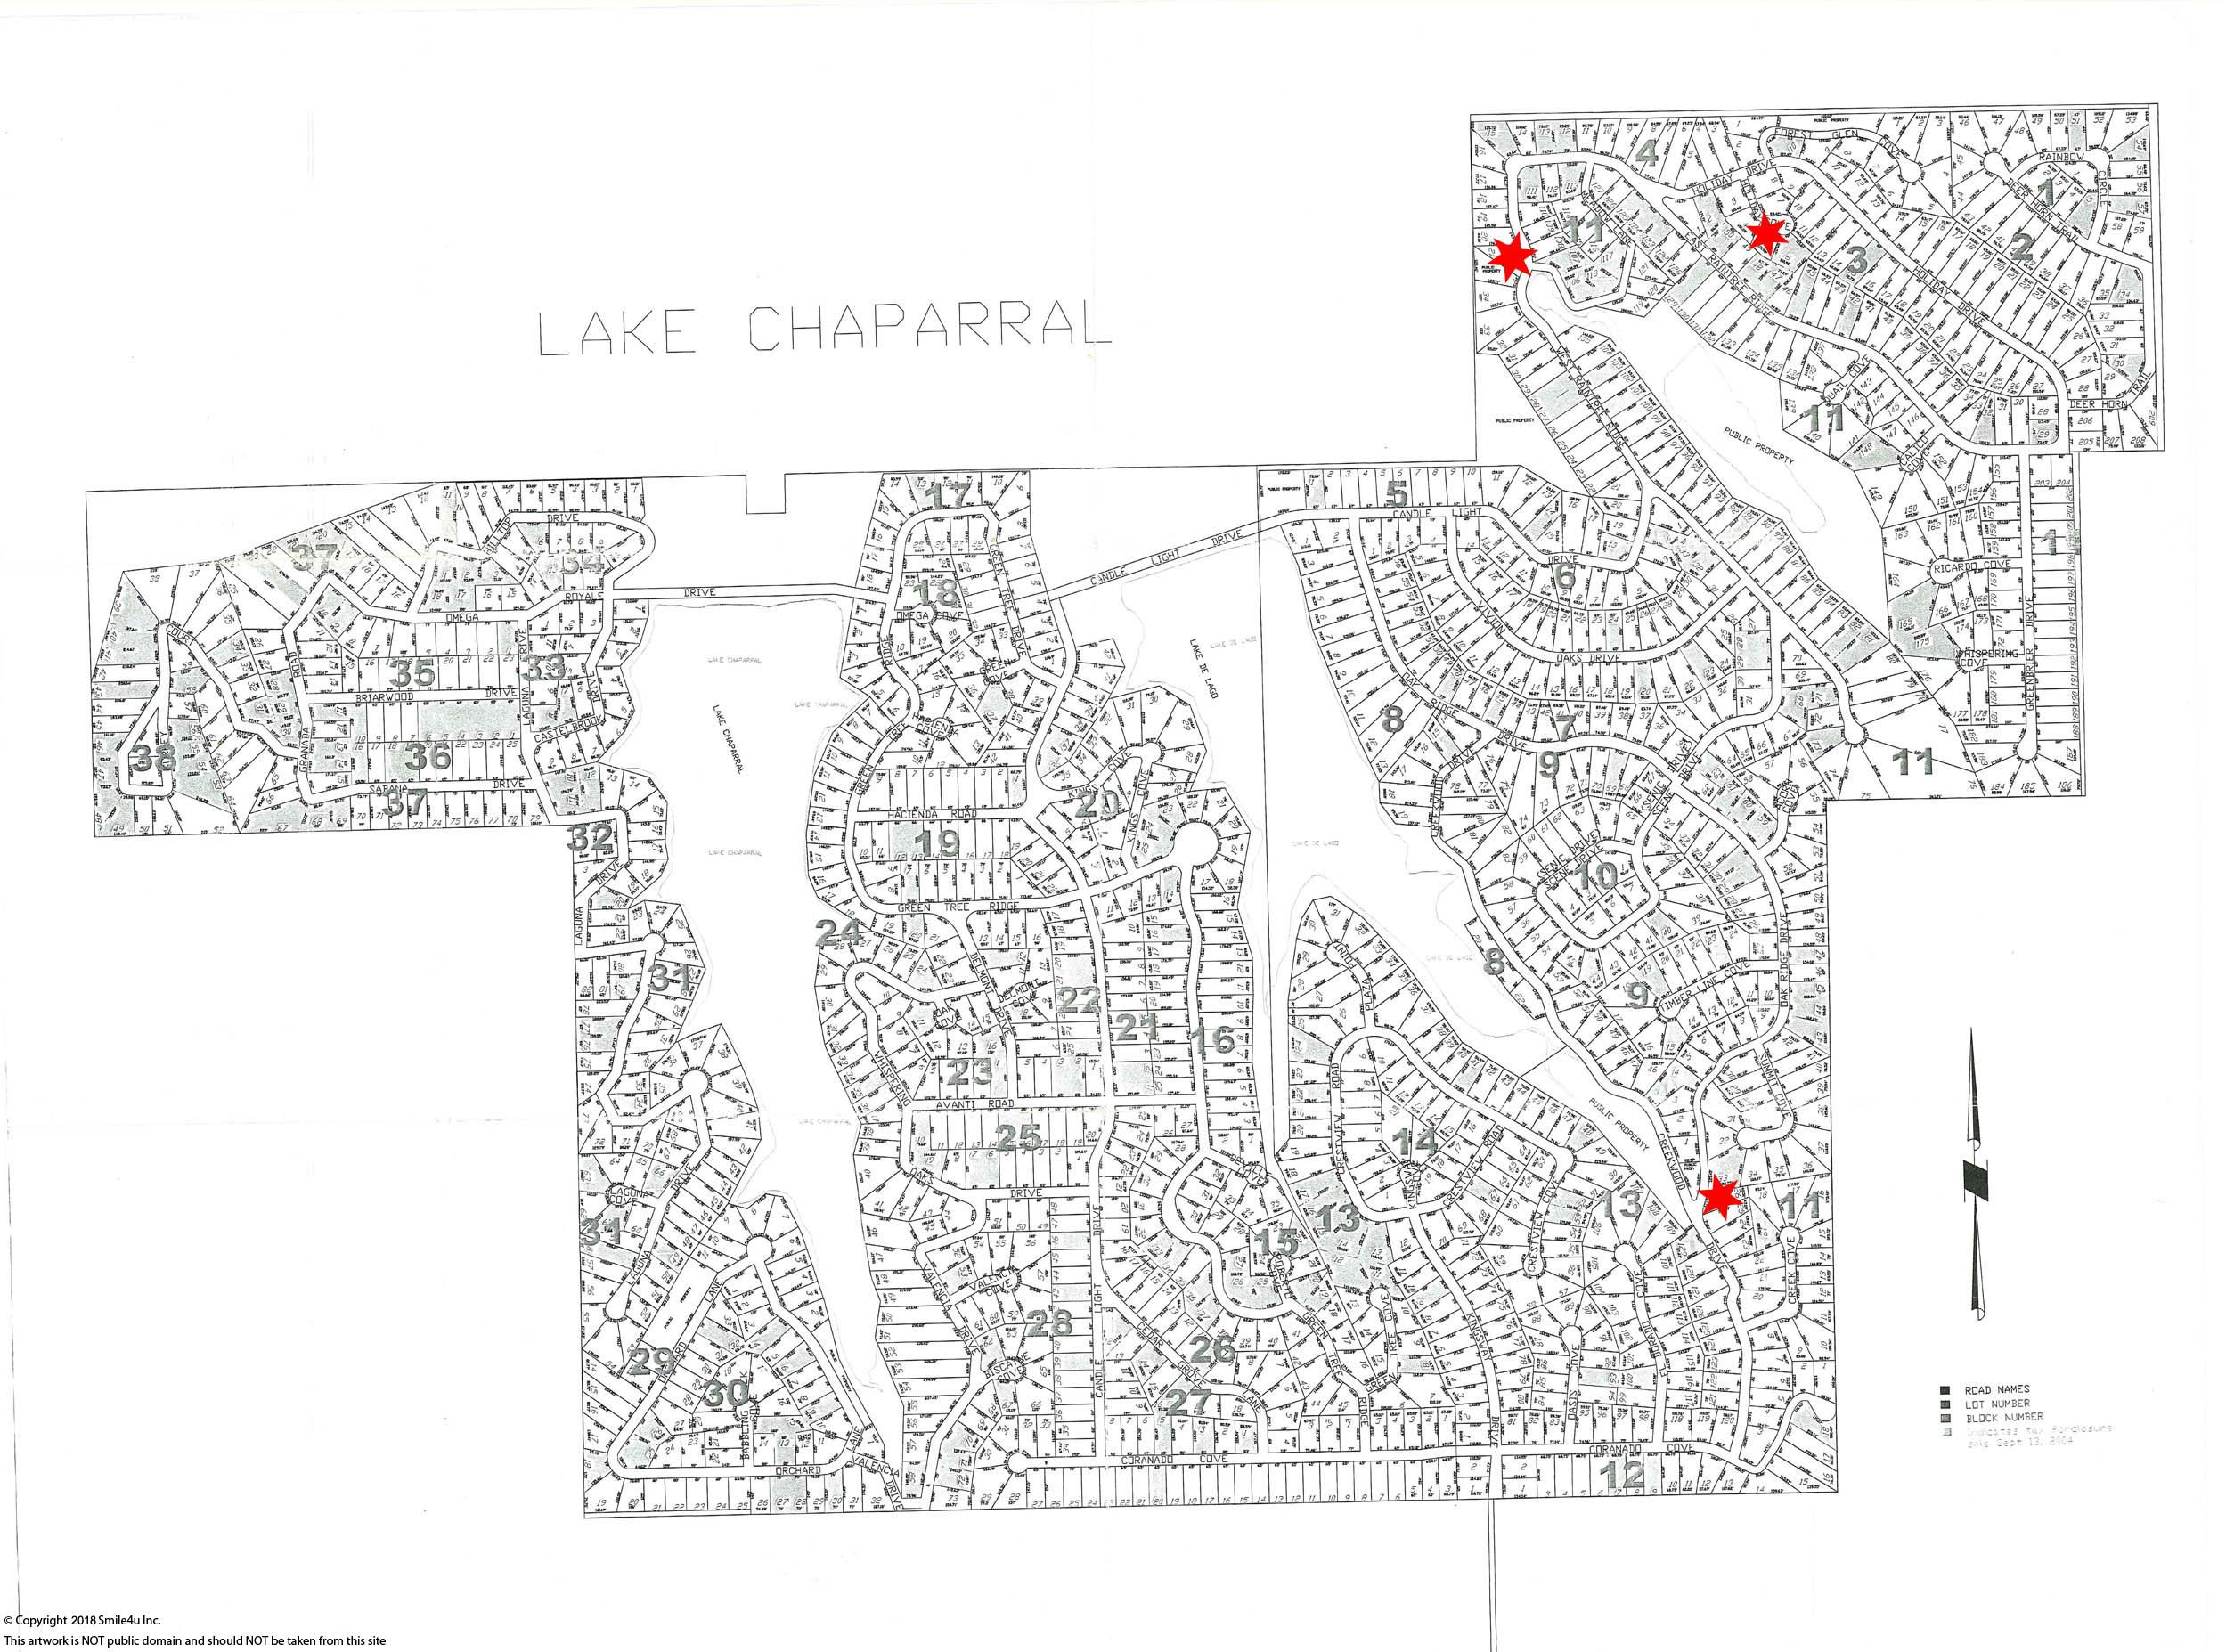 202032_watermarked_lake chaparral full subdivision map.jpg